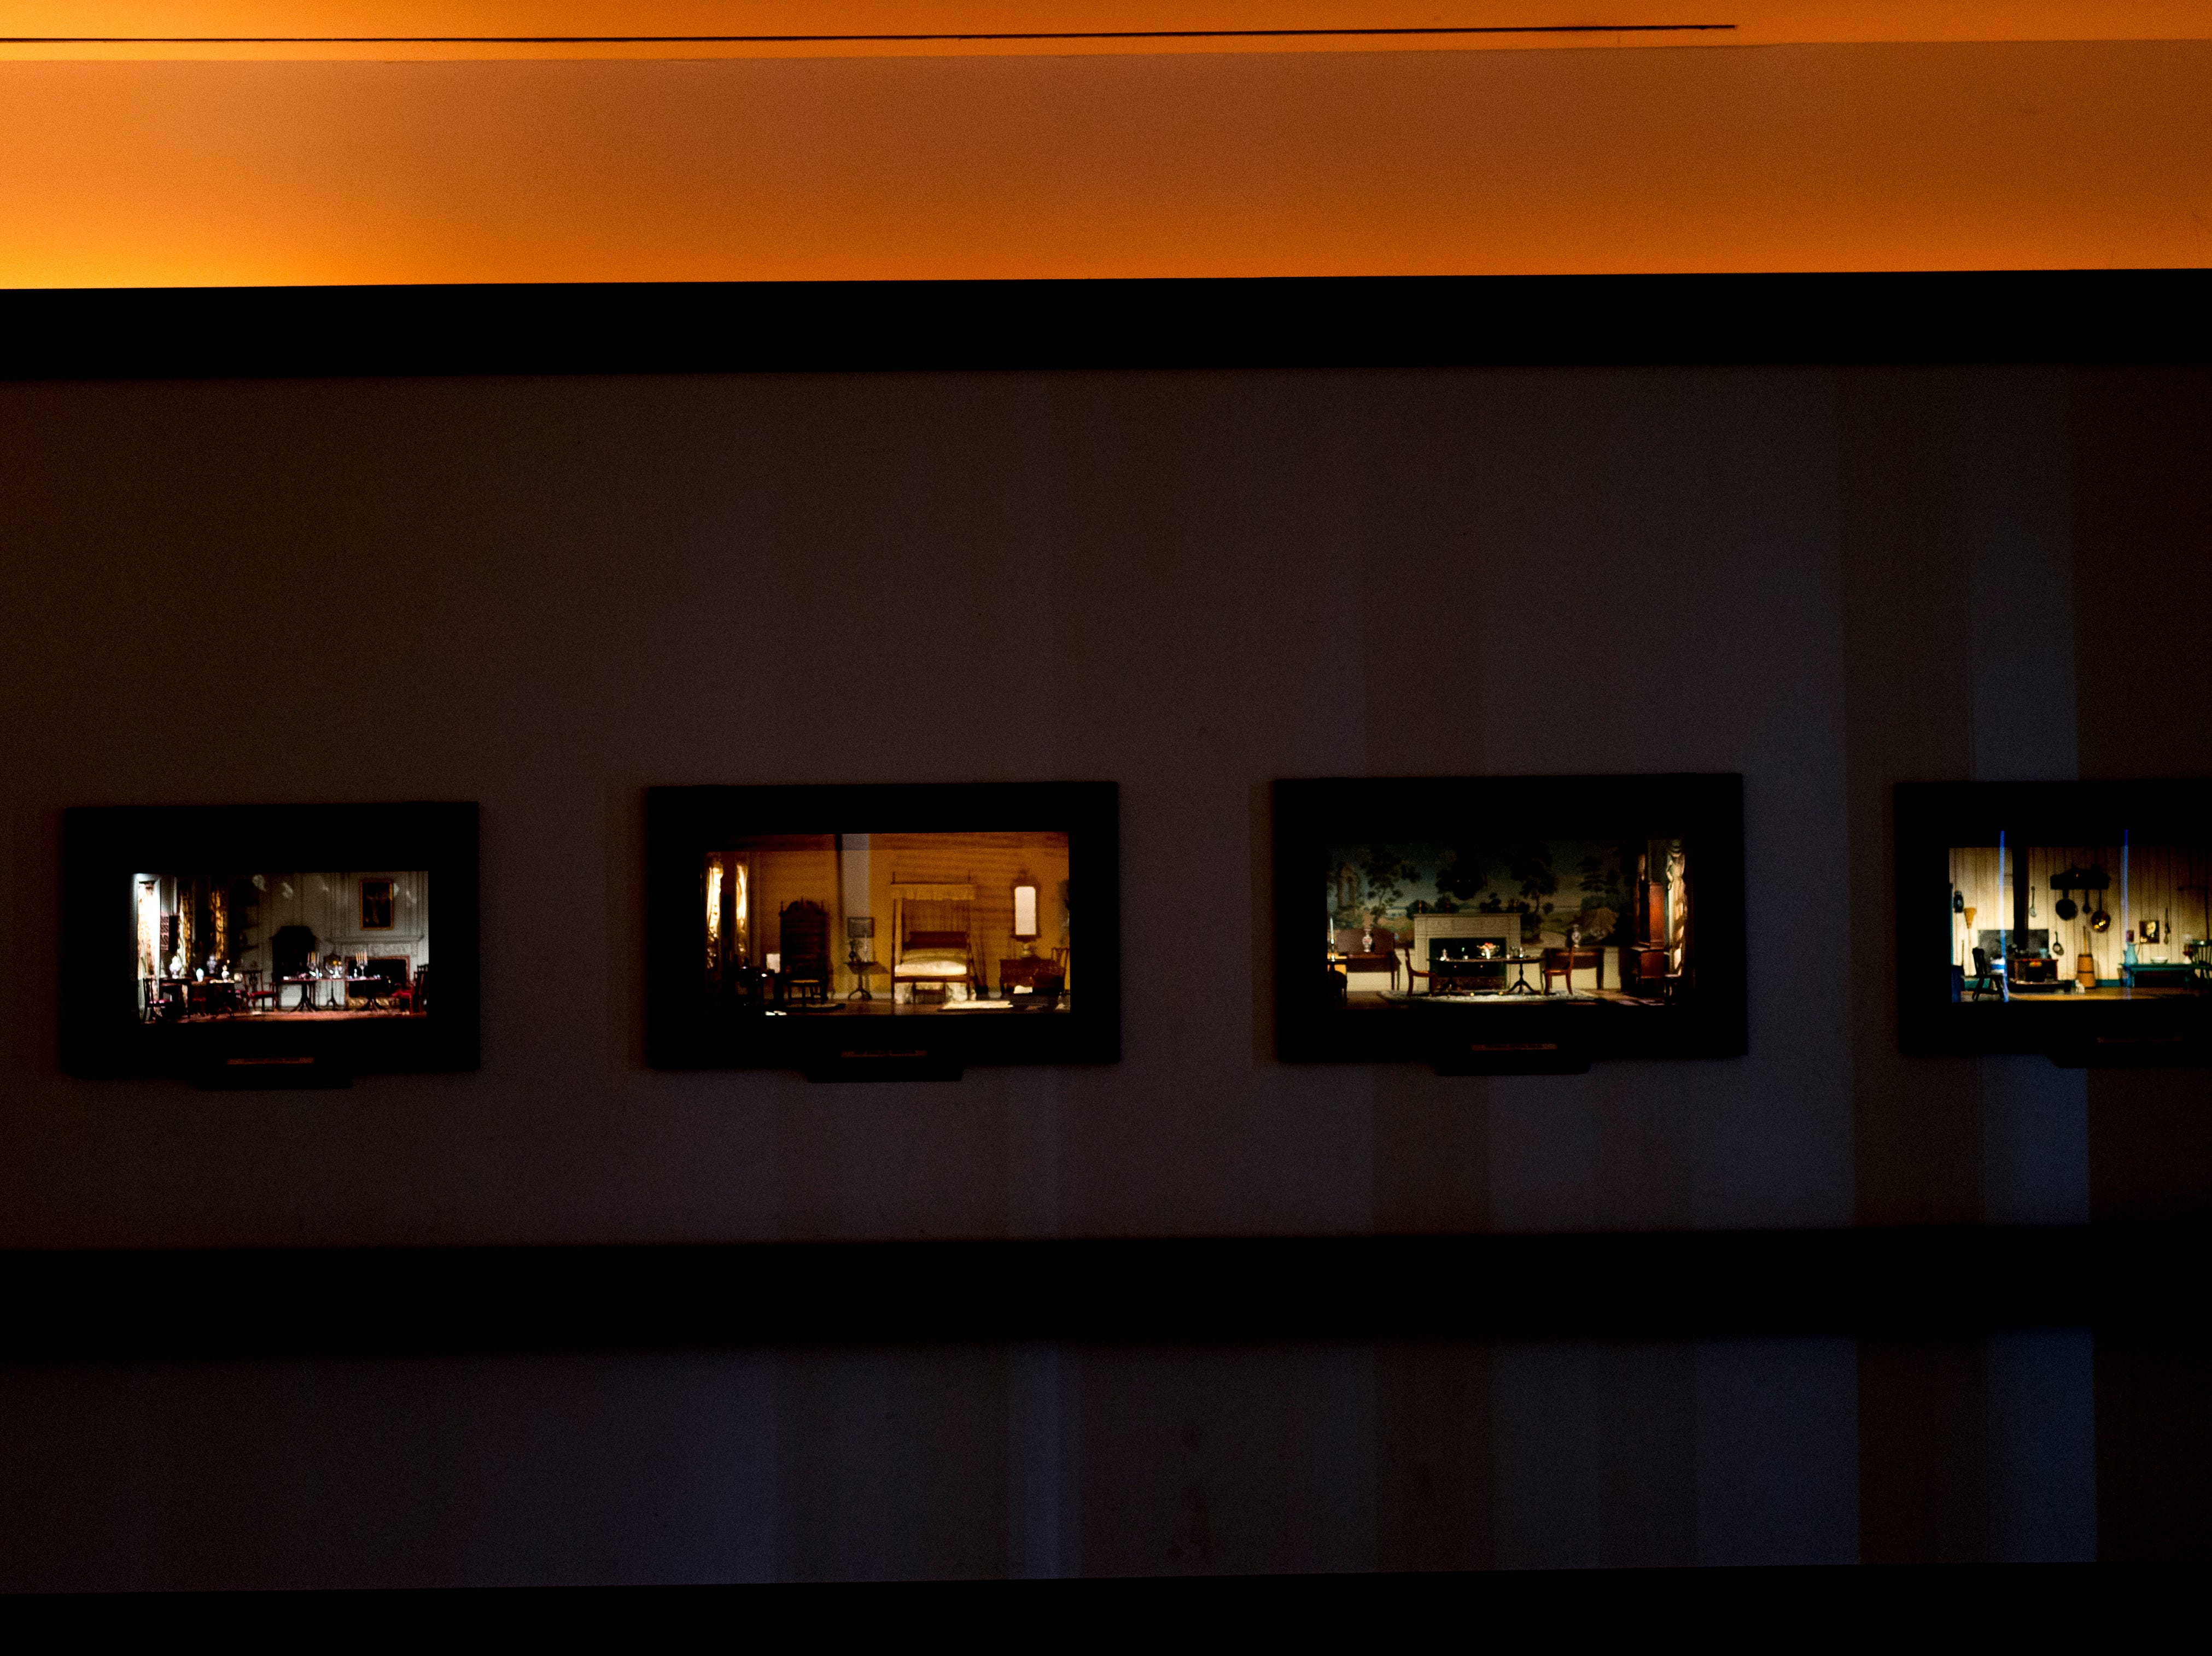 A row of the miniature room displays in the Thorne Room in Knoxville, Tennessee on Tuesday, August 21, 2018. The nine miniature rooms were created in the 1930s and 40s by Mrs. James Ward Thorne to a scale of one inch to one foot.